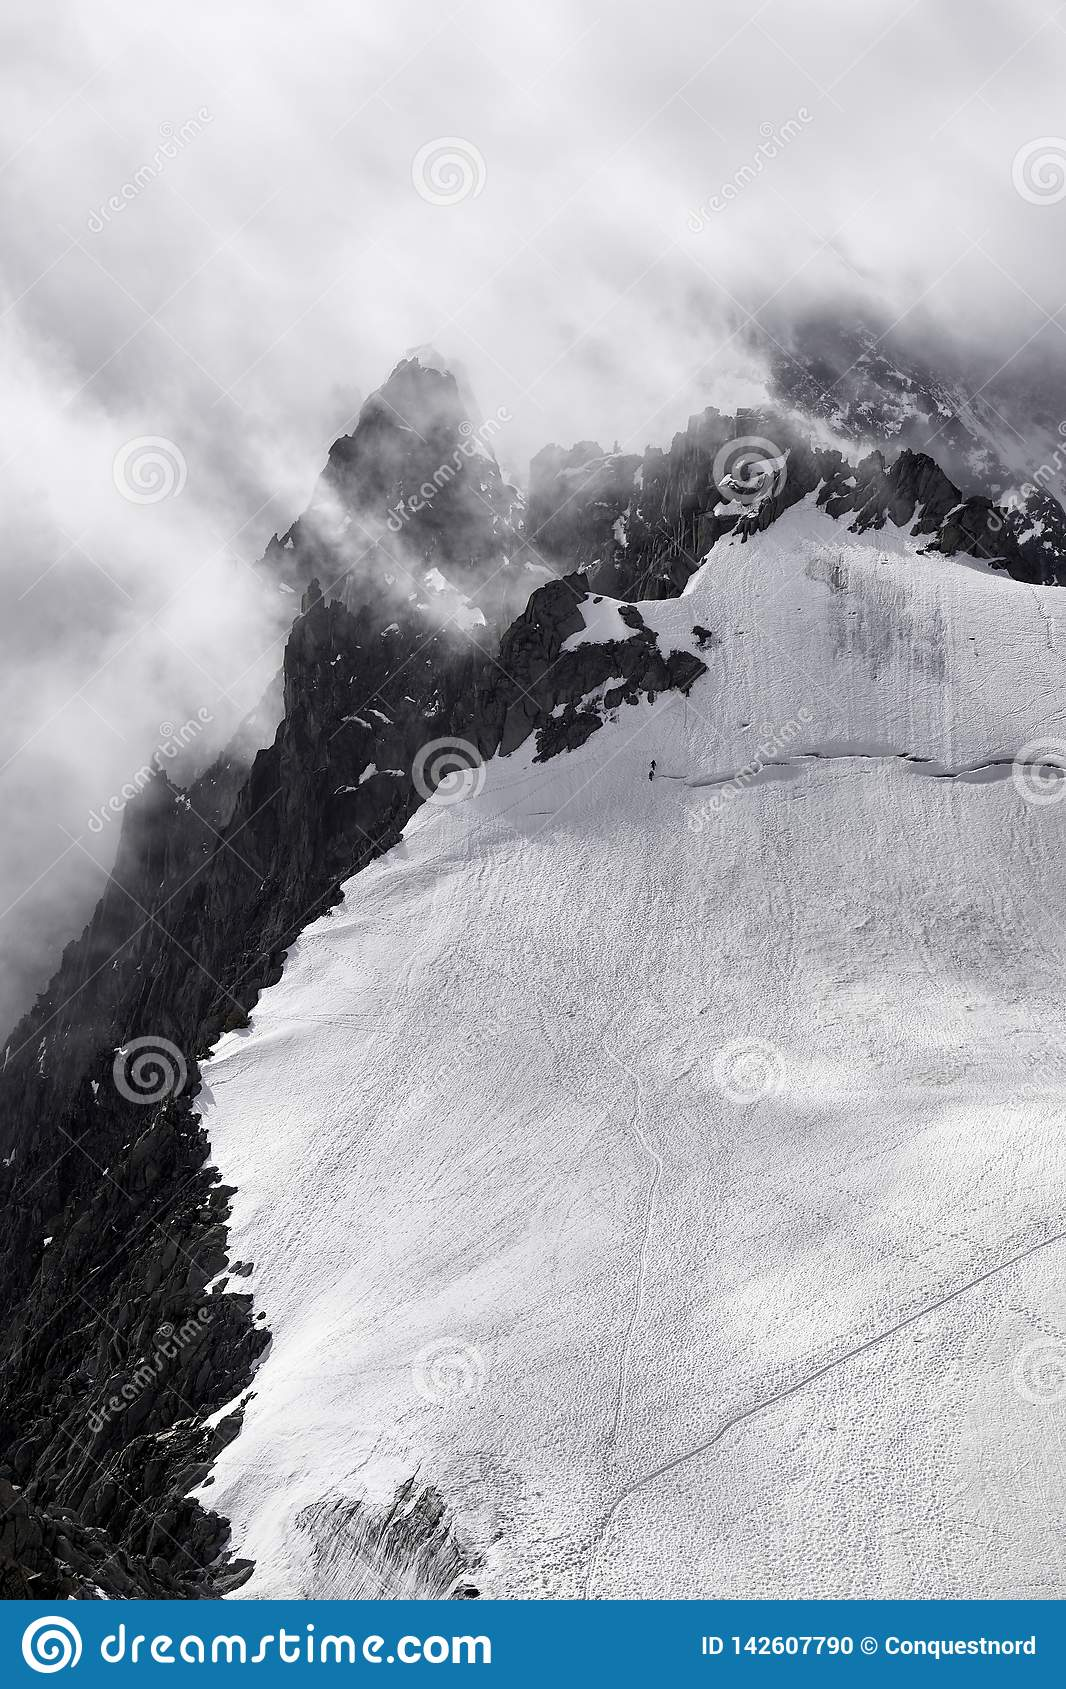 Mountain in Chamonix  in a bad weather with climbers